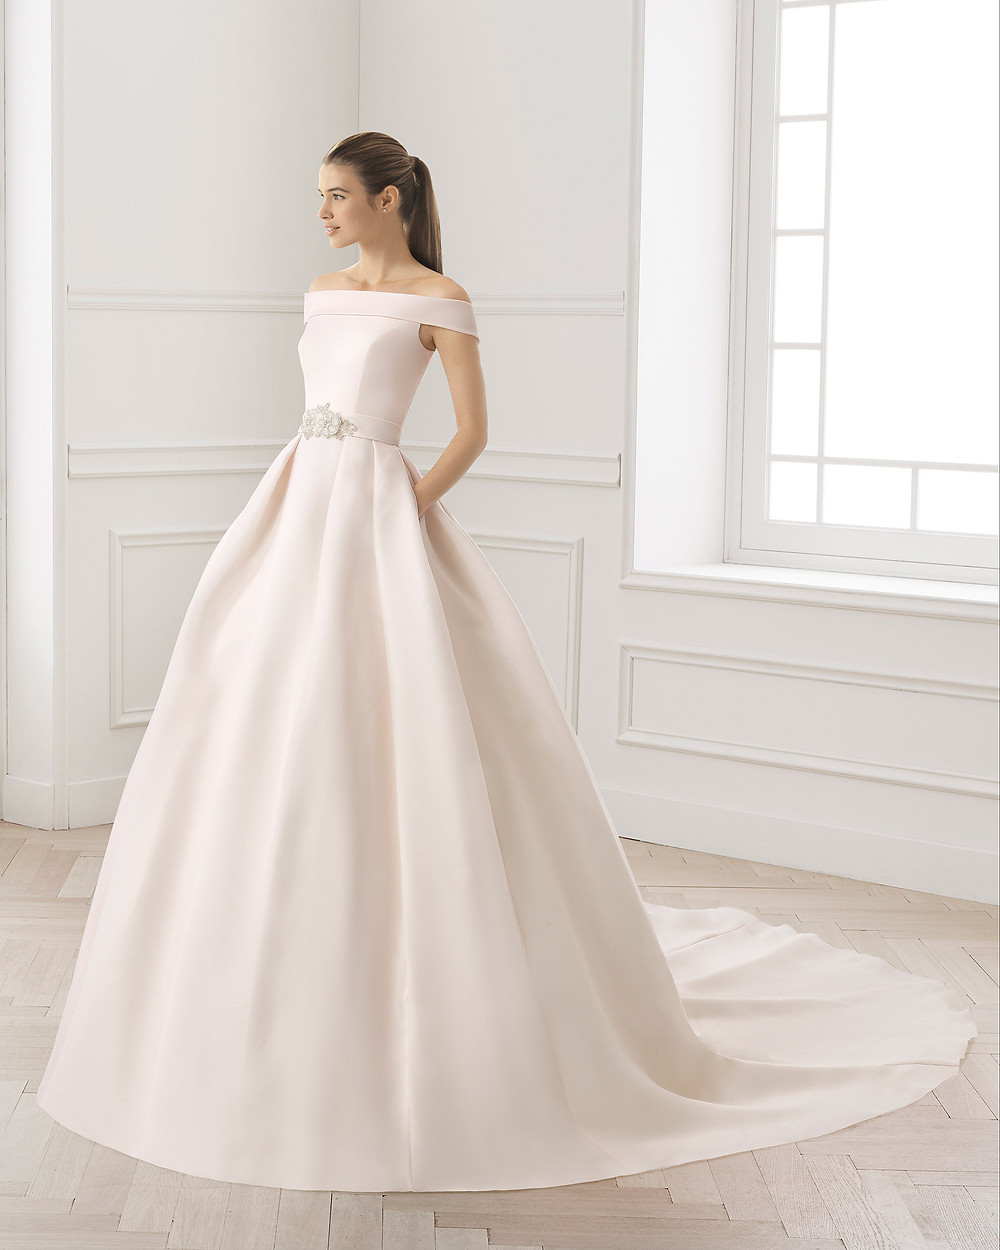 An Aire Barcelona 2020 blush pink off the shoulder silk ball gown wedding dress with pockets